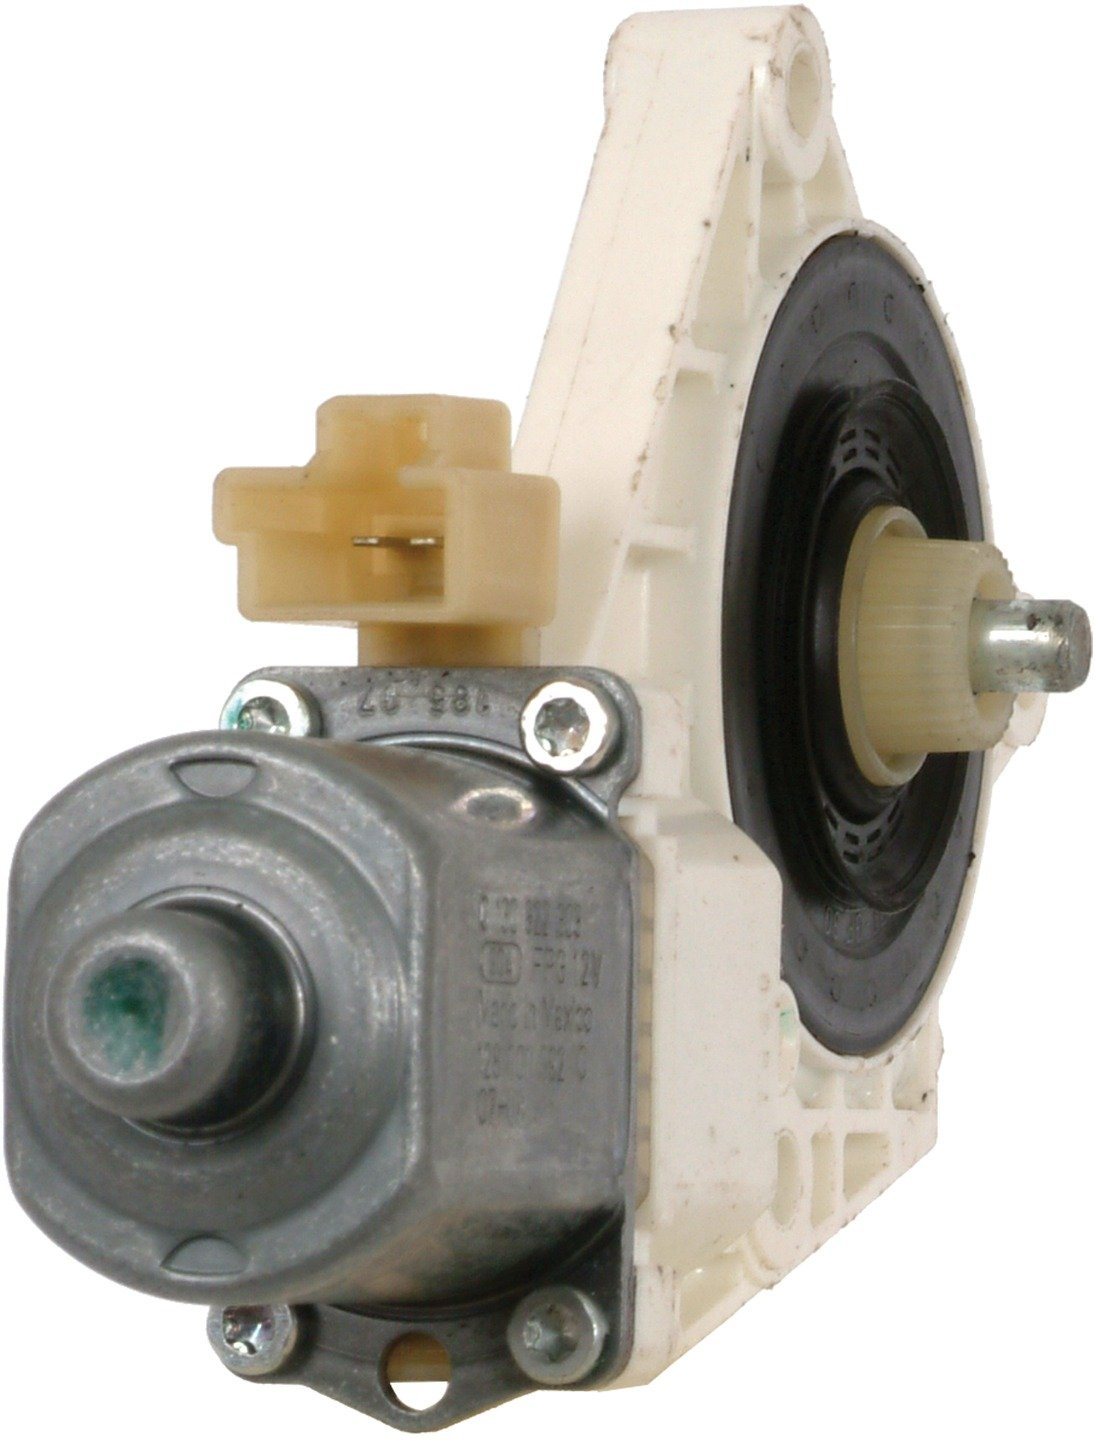 A1 Cardone 42-3063 Remanufactured Window Lift Motor